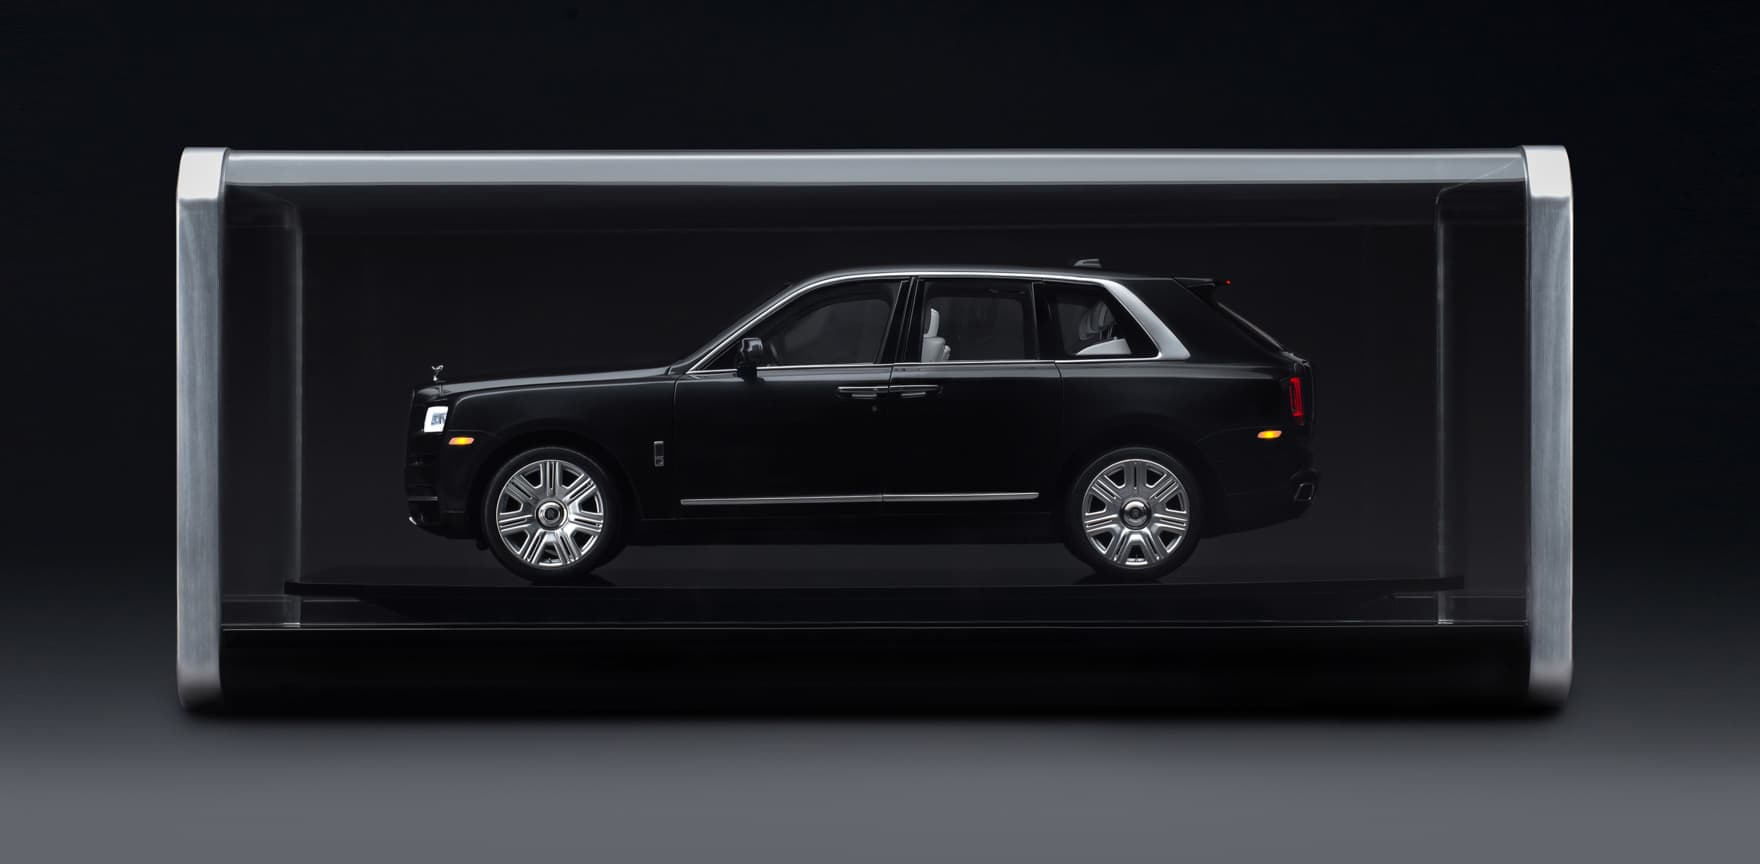 Exterior side view of 1:8 scale model of the Rolls-Royce Cullinan motor car in glass viewing case